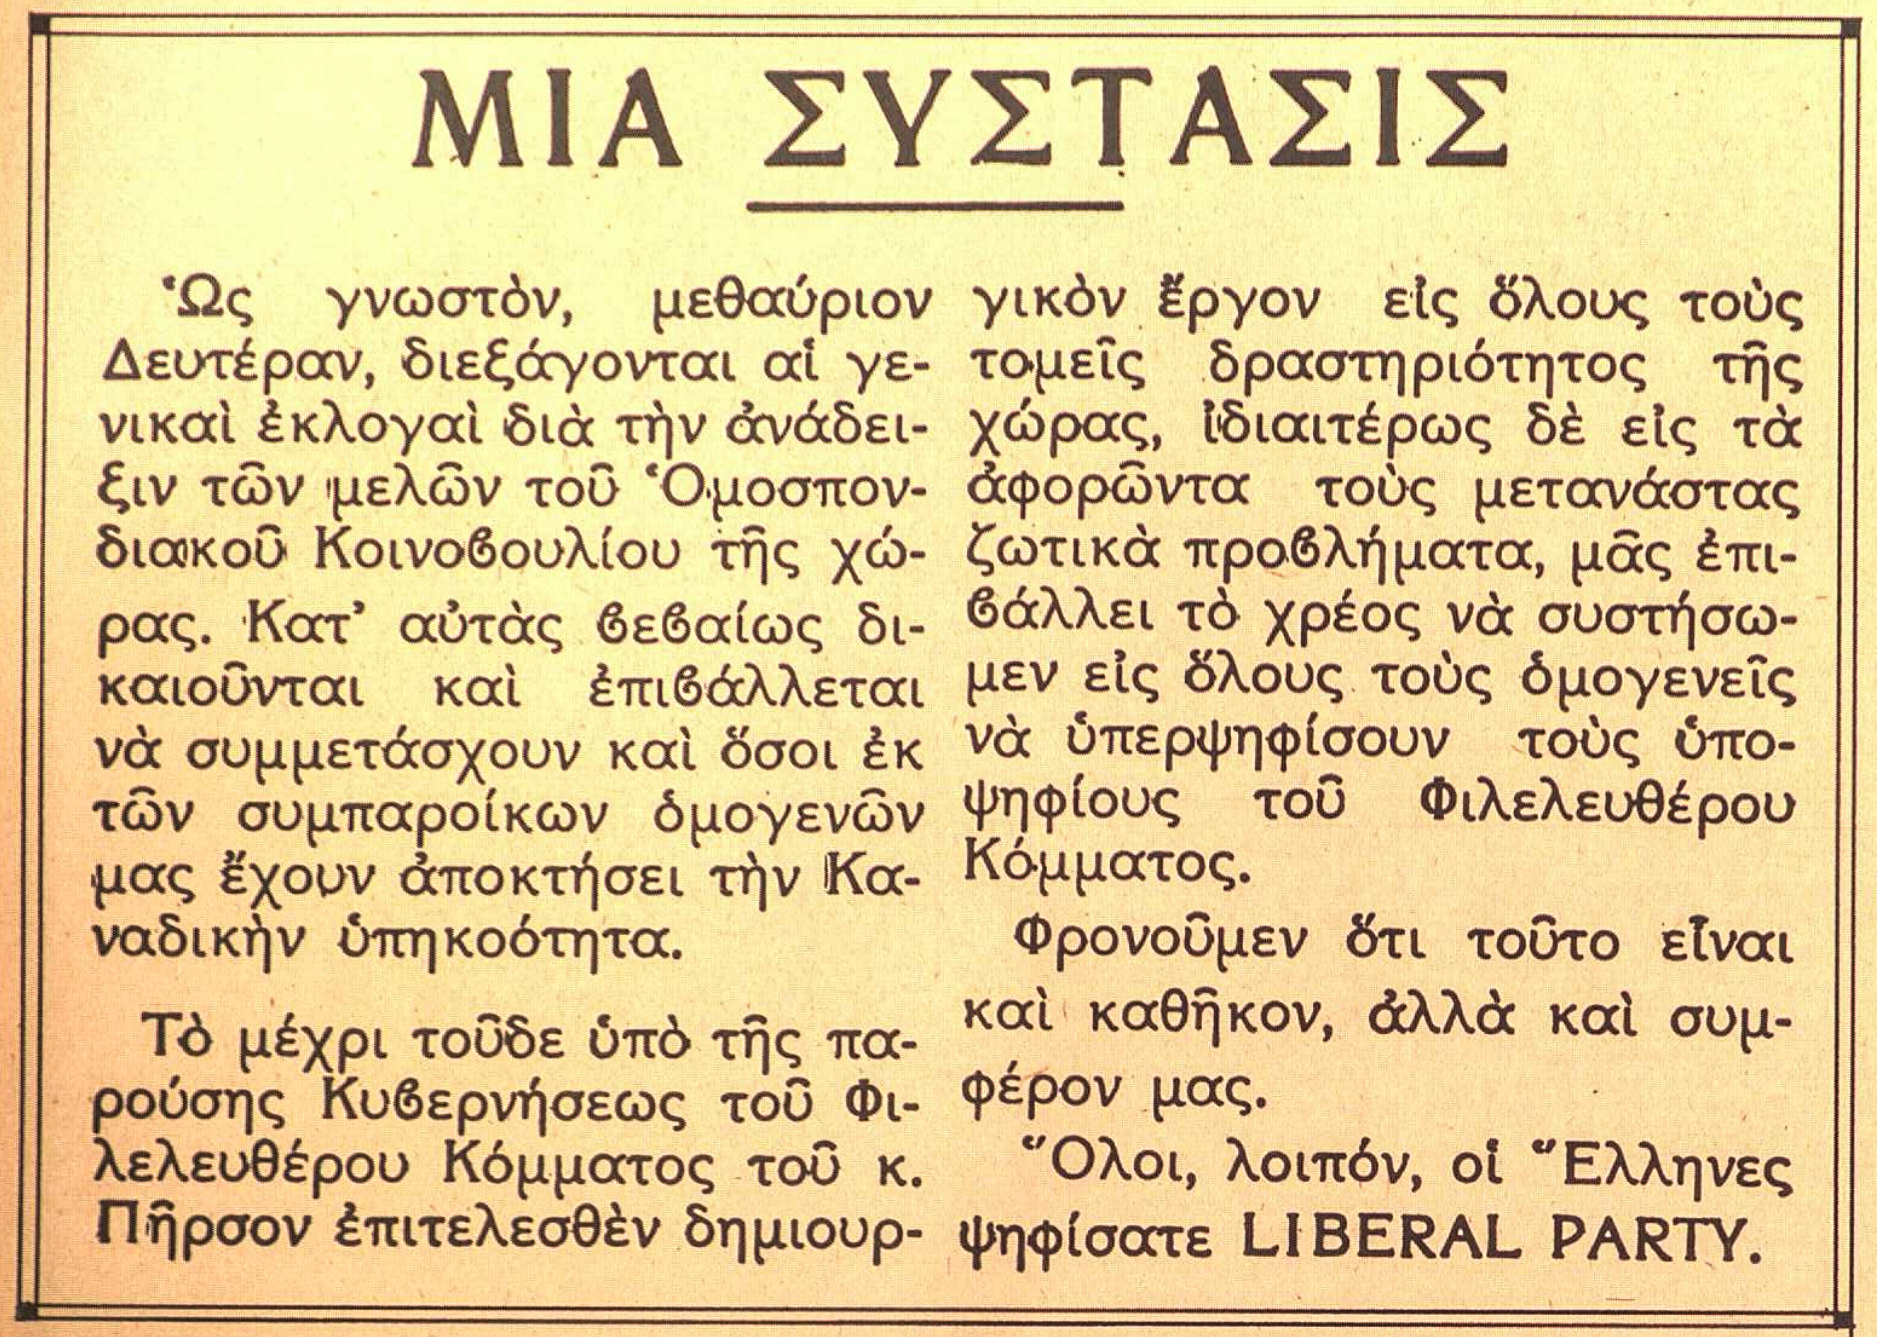 Vote Liberal Political ad of the Liberal Party. The Greek Canadian Tribune, 06/11/1965, p. 1 and 3. Source: Greek-canadian press